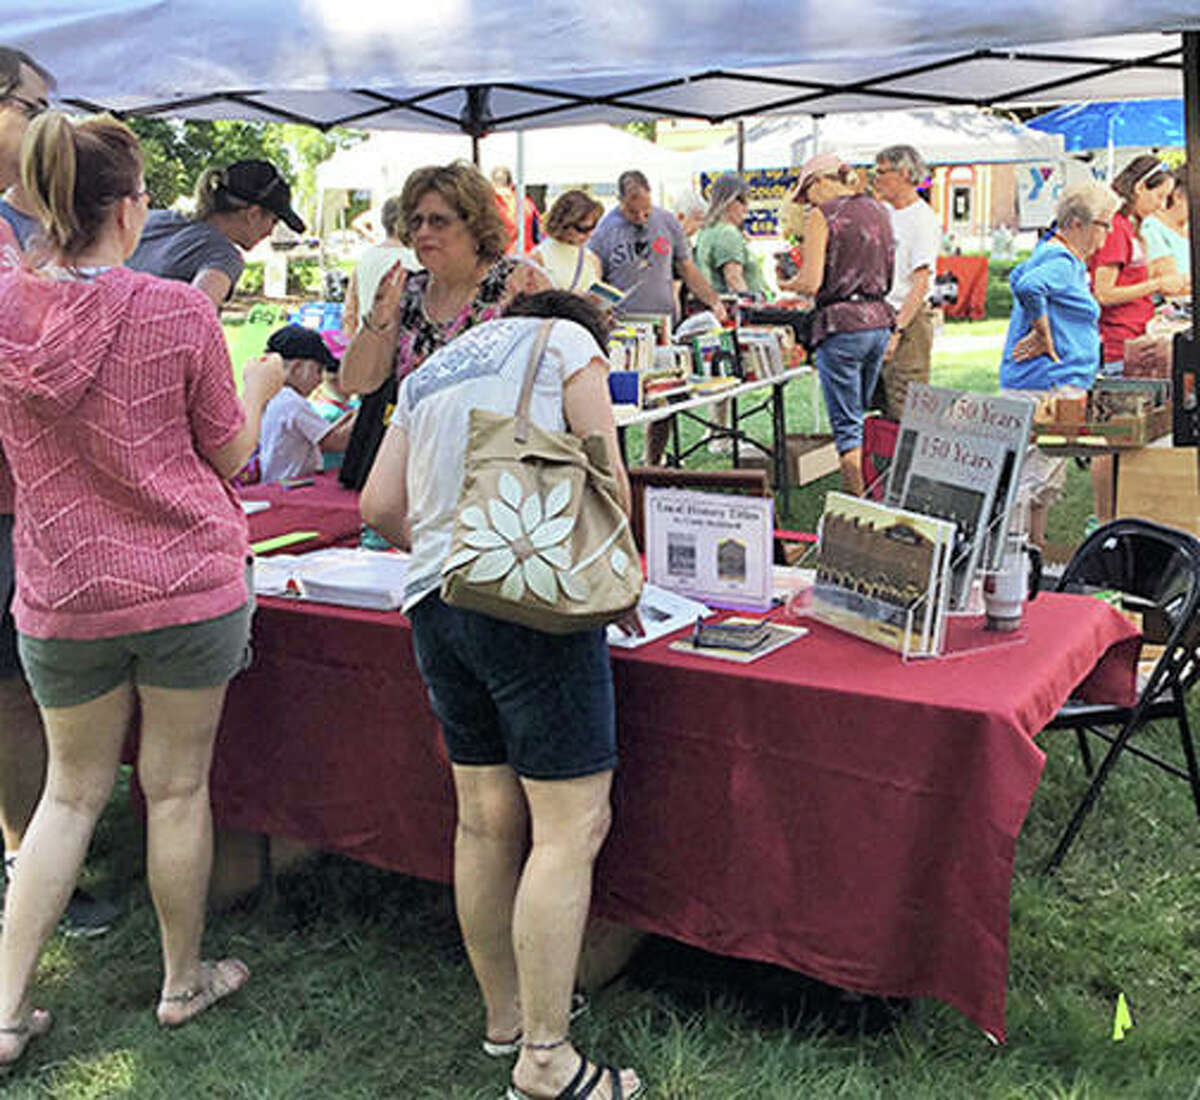 Local author and historian Cindy Reinhardt had her books for sale at the inaugural Edwardsville Book Festival in 2019. This year's event is slated for Sept. 4 at Edwardsville City Park.